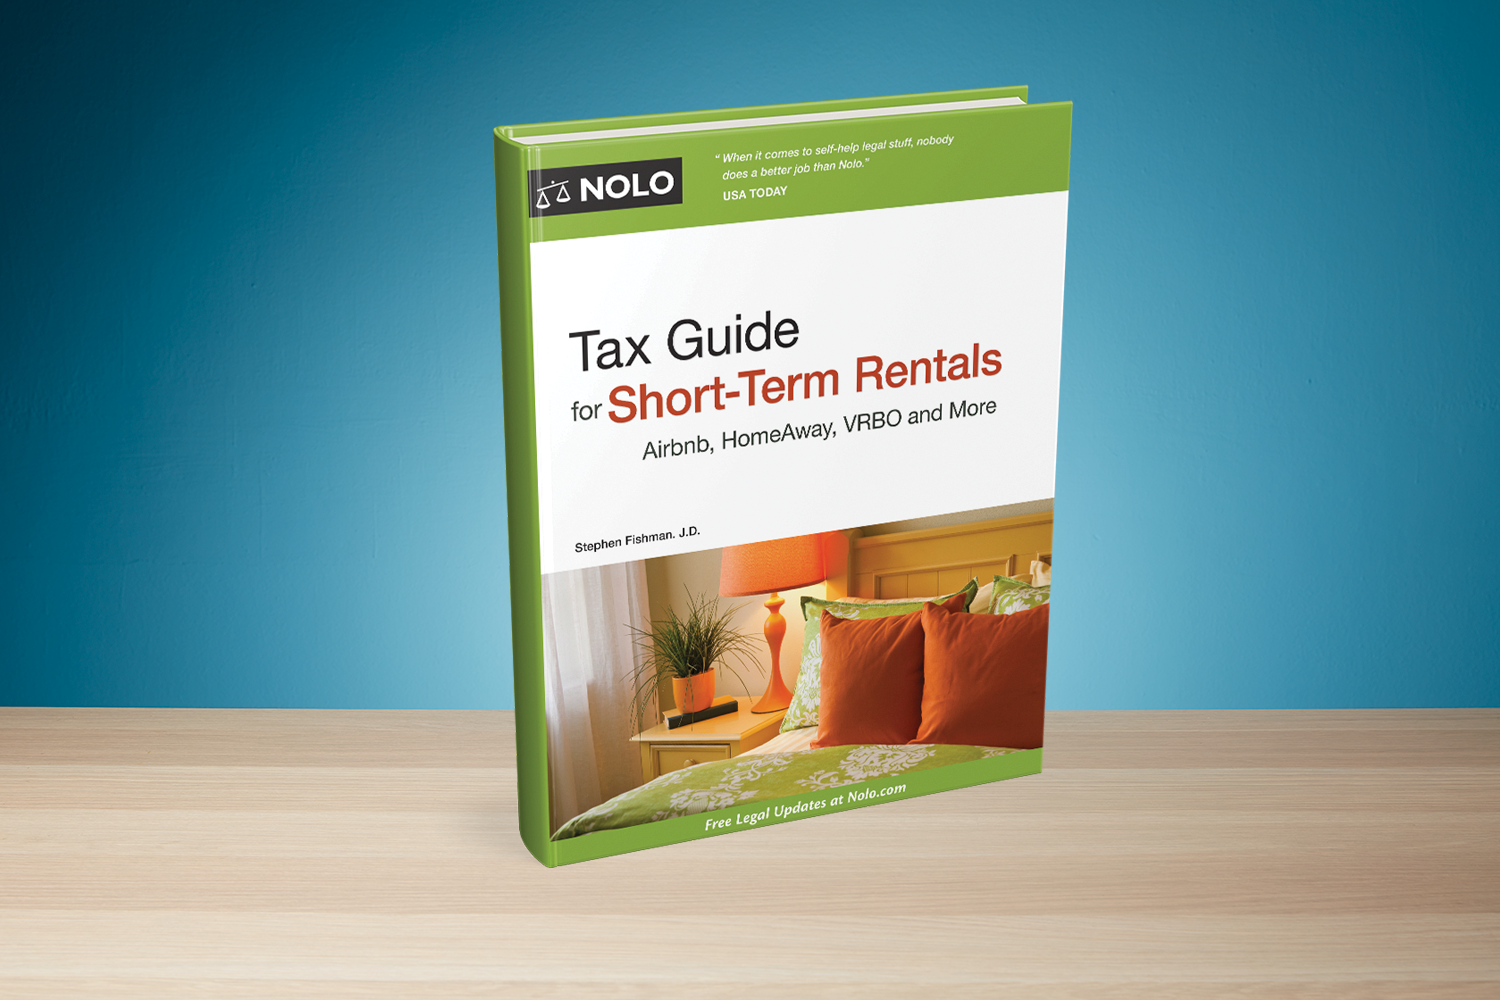 Tax Guide for Short-Term Rentals (1st Edition) - #4755